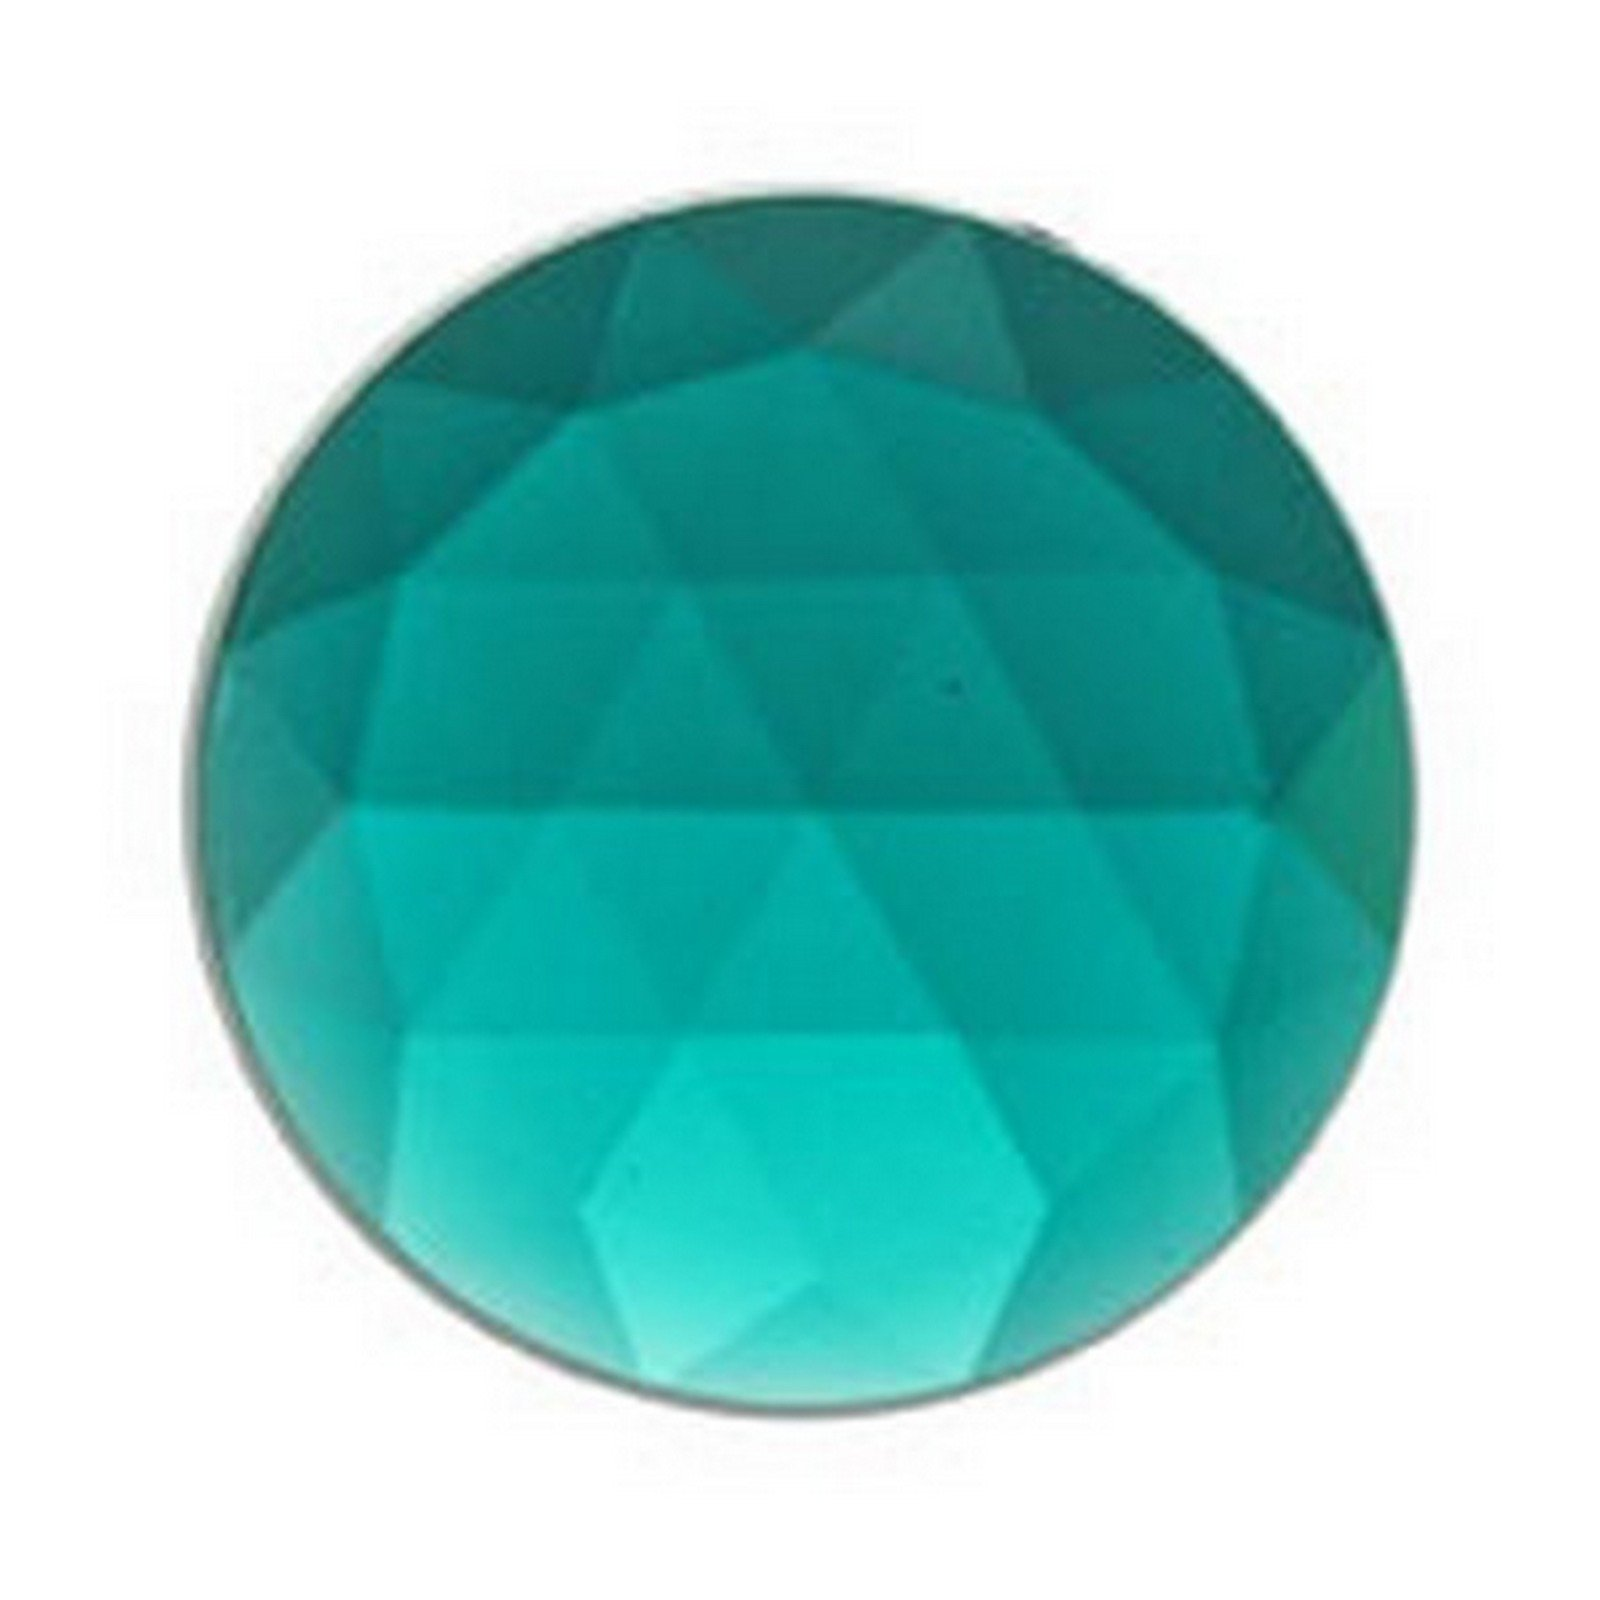 Stained Glass Jewels - 25mm Round Faceted - Teal (Pack of 4) By Stallings Stained Glass